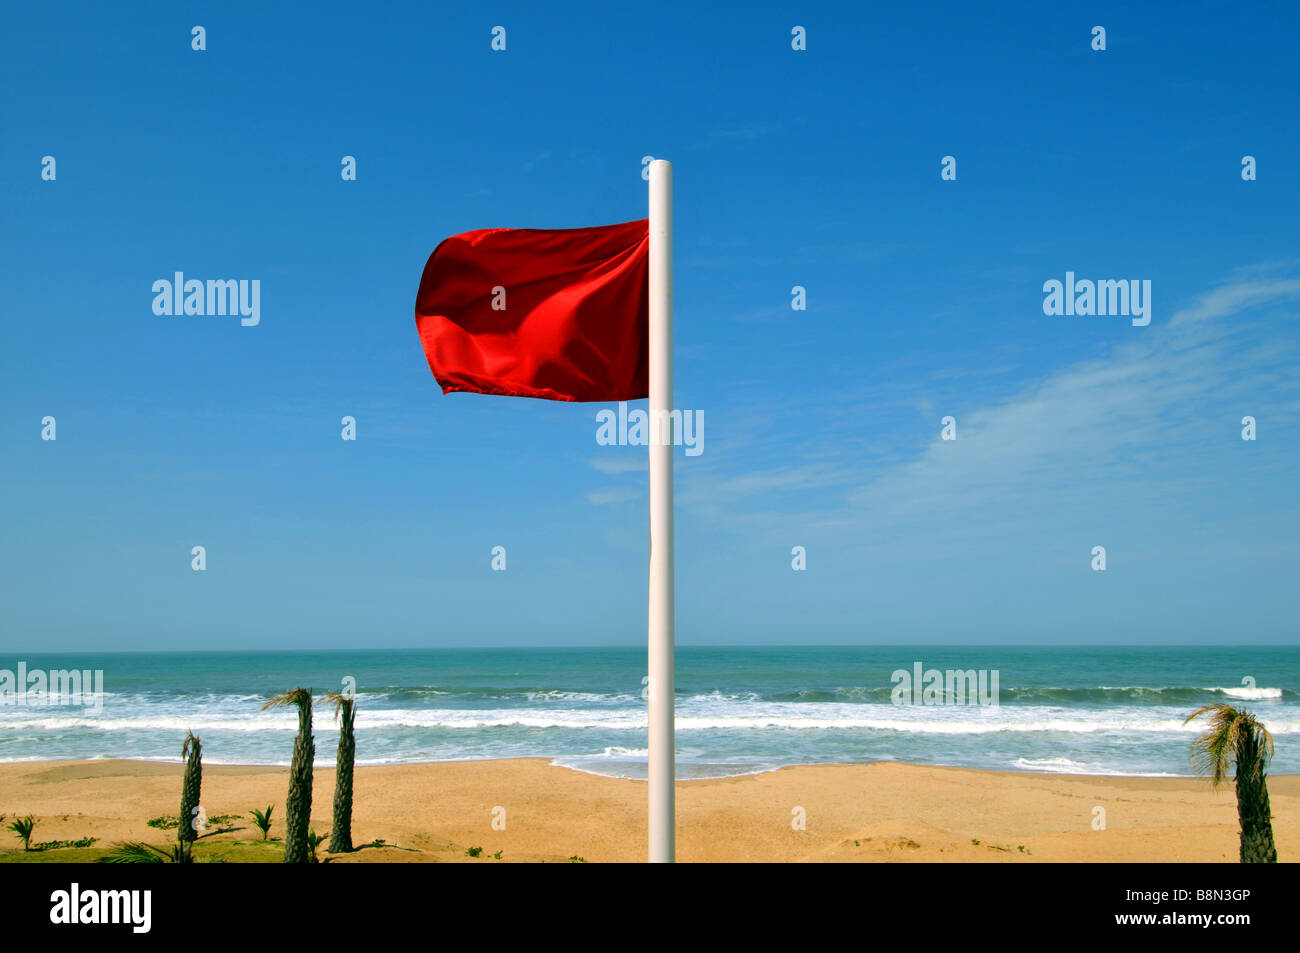 Red flag flying at a beach warning not to enter the water, The Gambia, West Africa - Stock Image